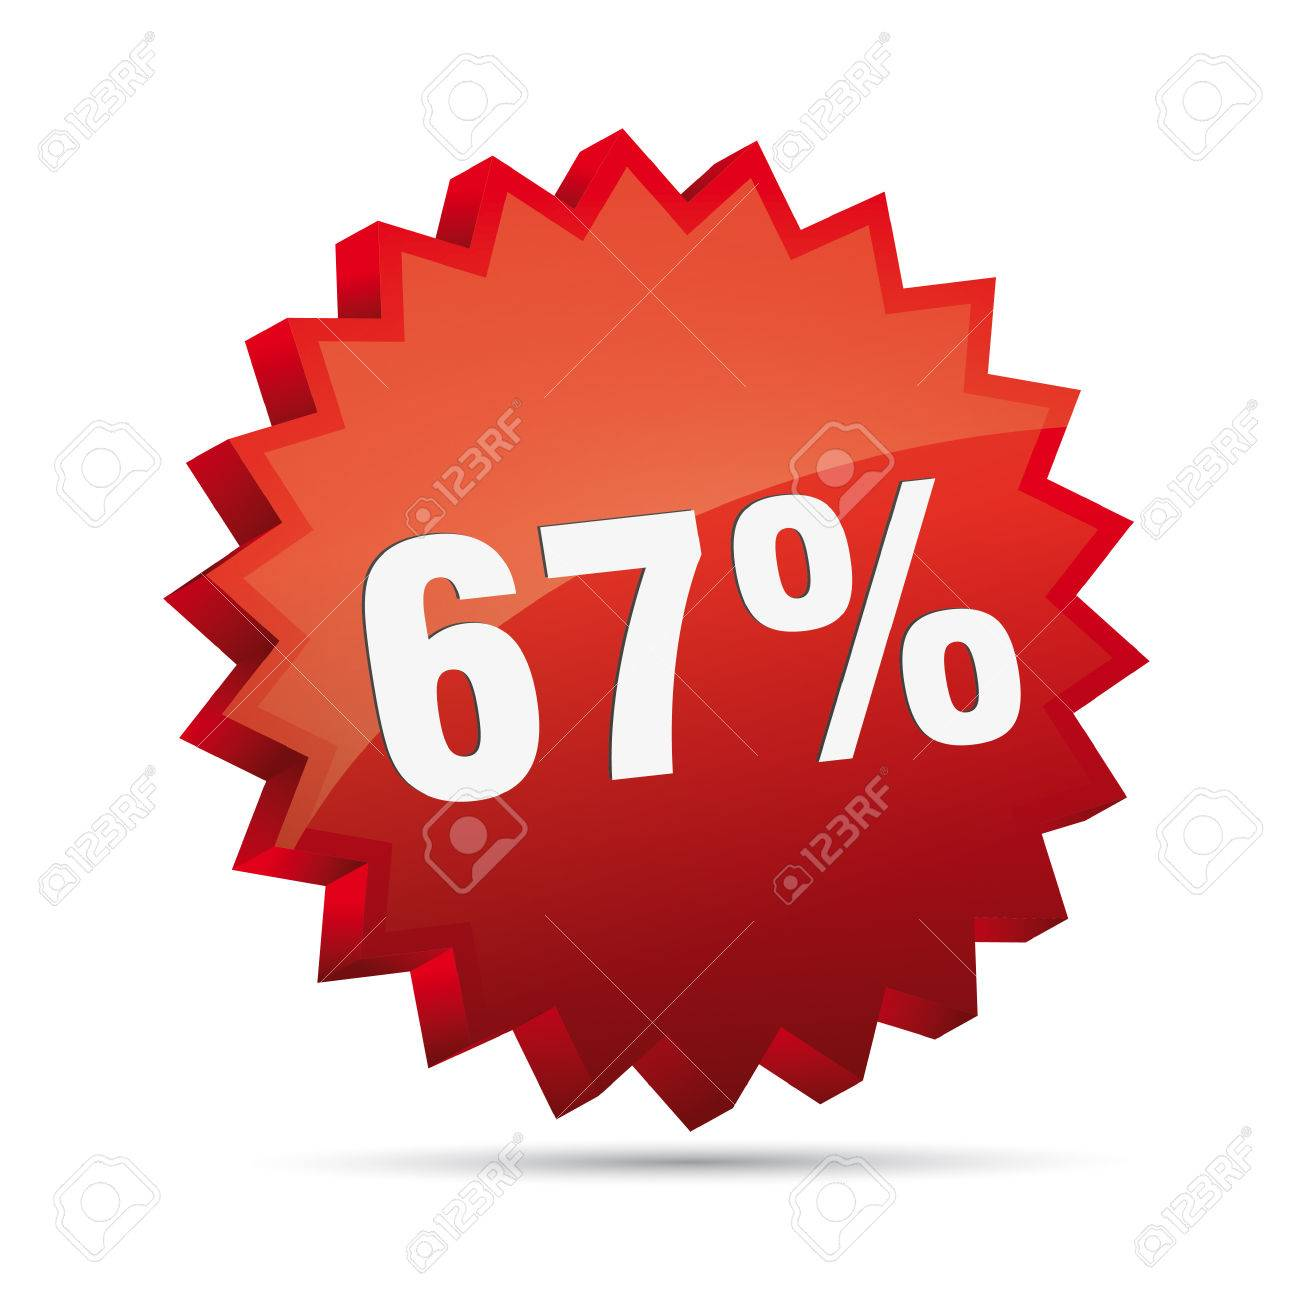 372bda543975 67 sixty-seven percent reduced 3D Discount advertising action button badge  bestseller shop sale Stock